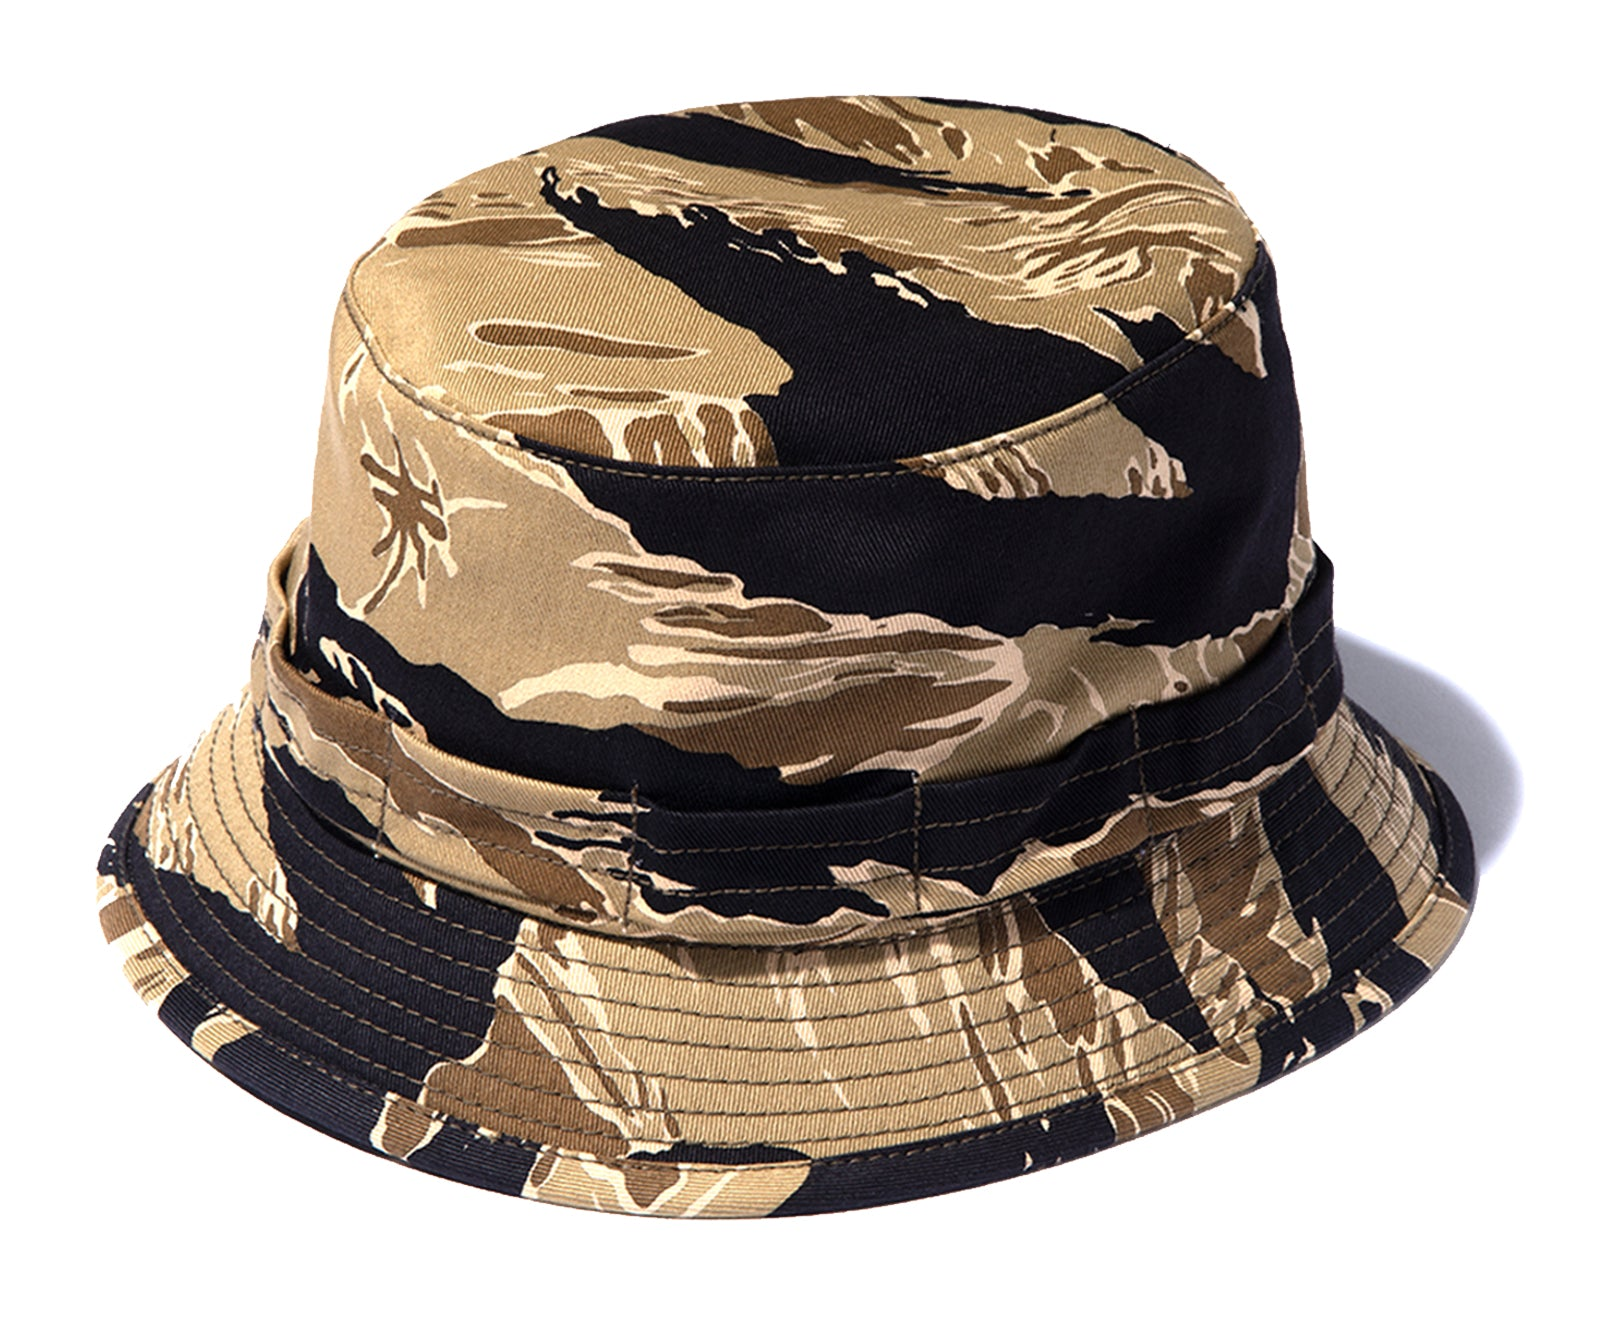 TIGER CAMOUFLAGE BOONIE HAT / GOLD TONE